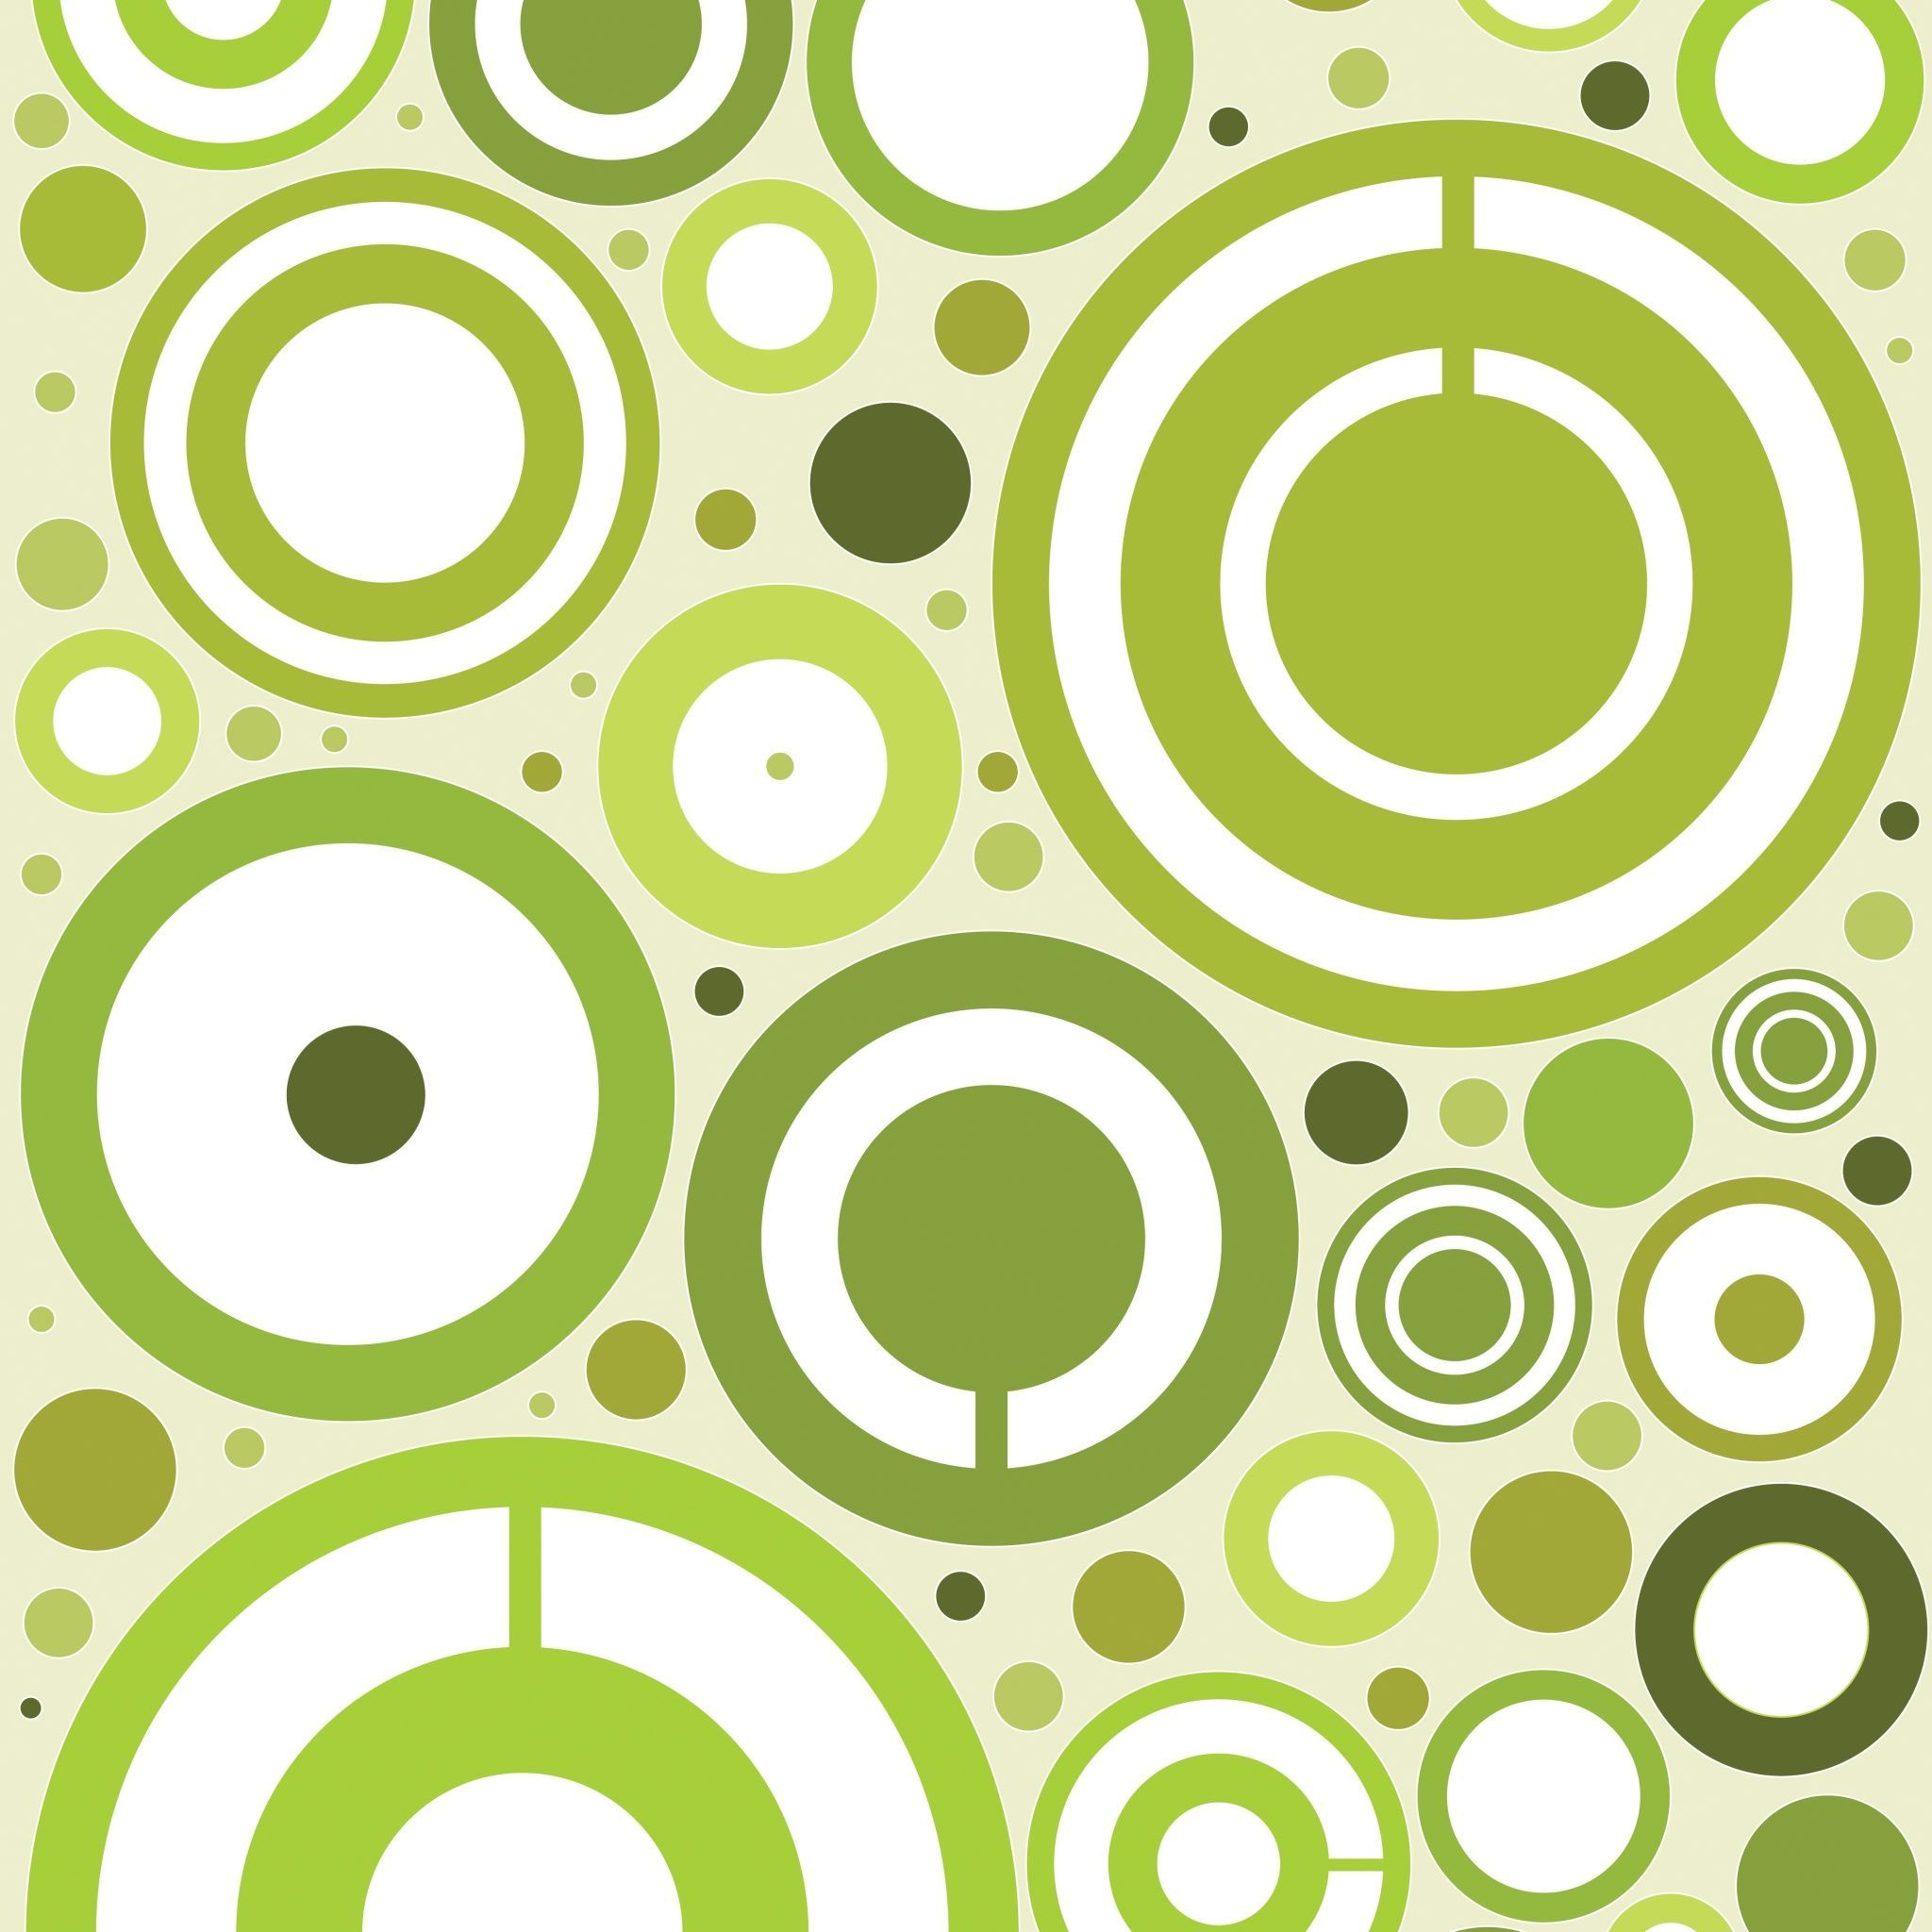 Wallpapers With Circles Group (84+)